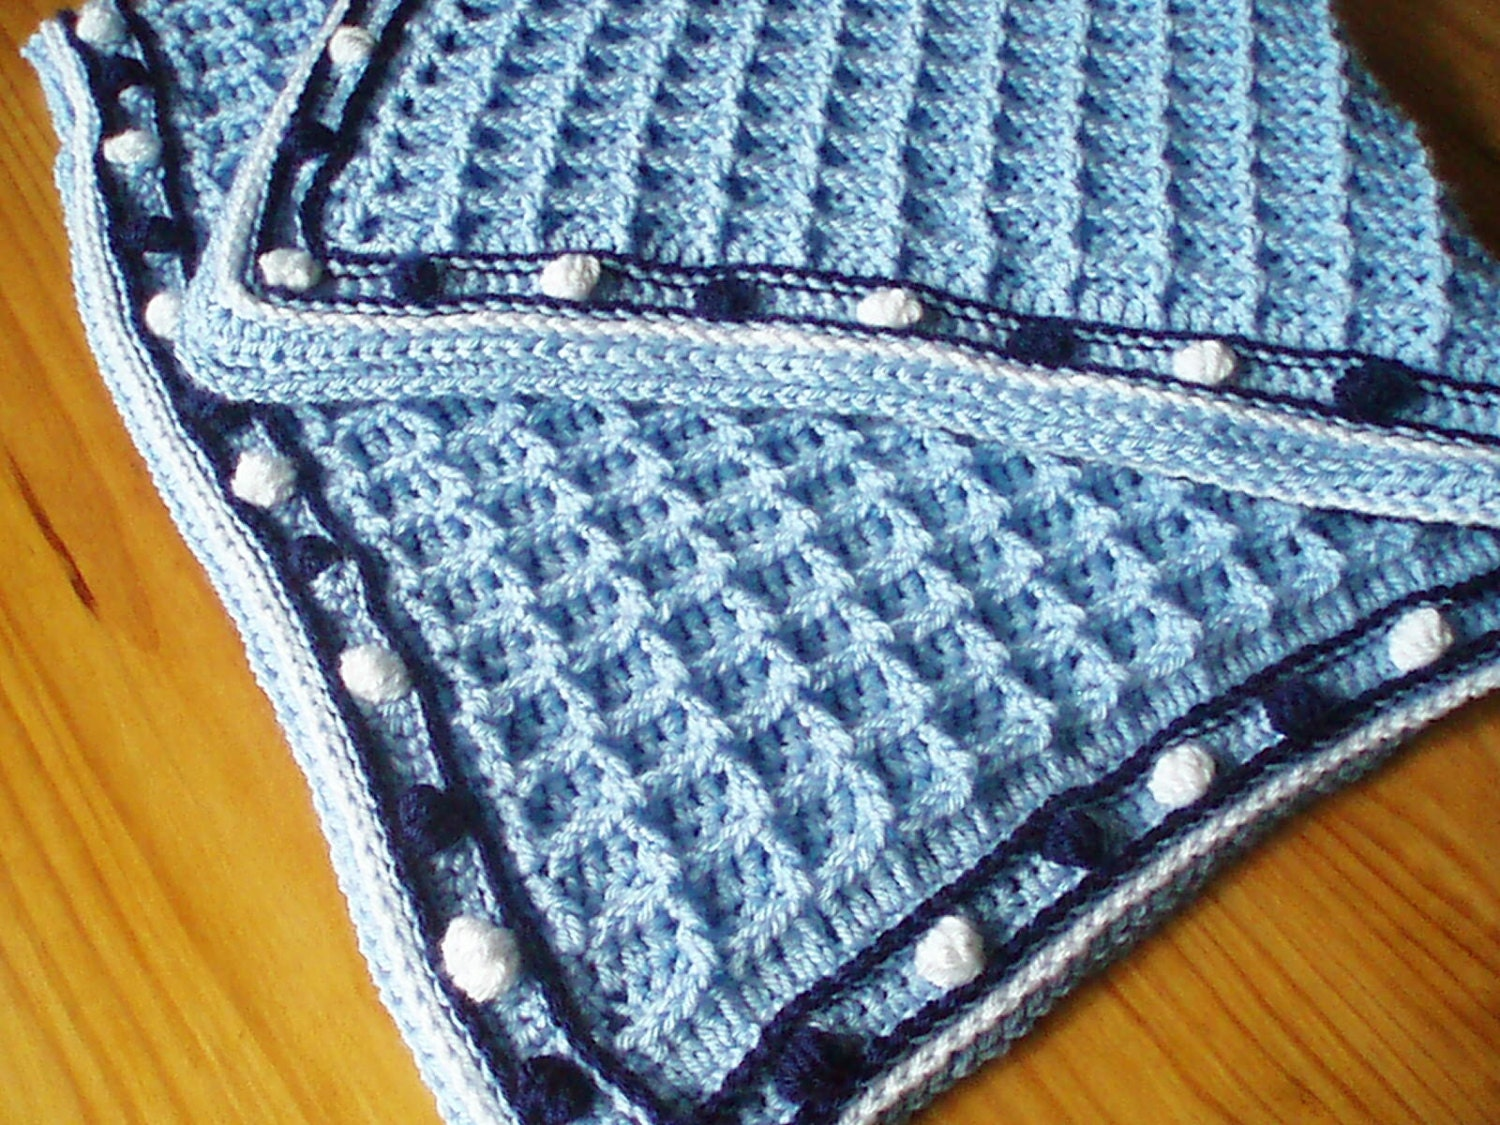 Crochet Pattern For Baby Blanket In Waffle Weave With Bobble